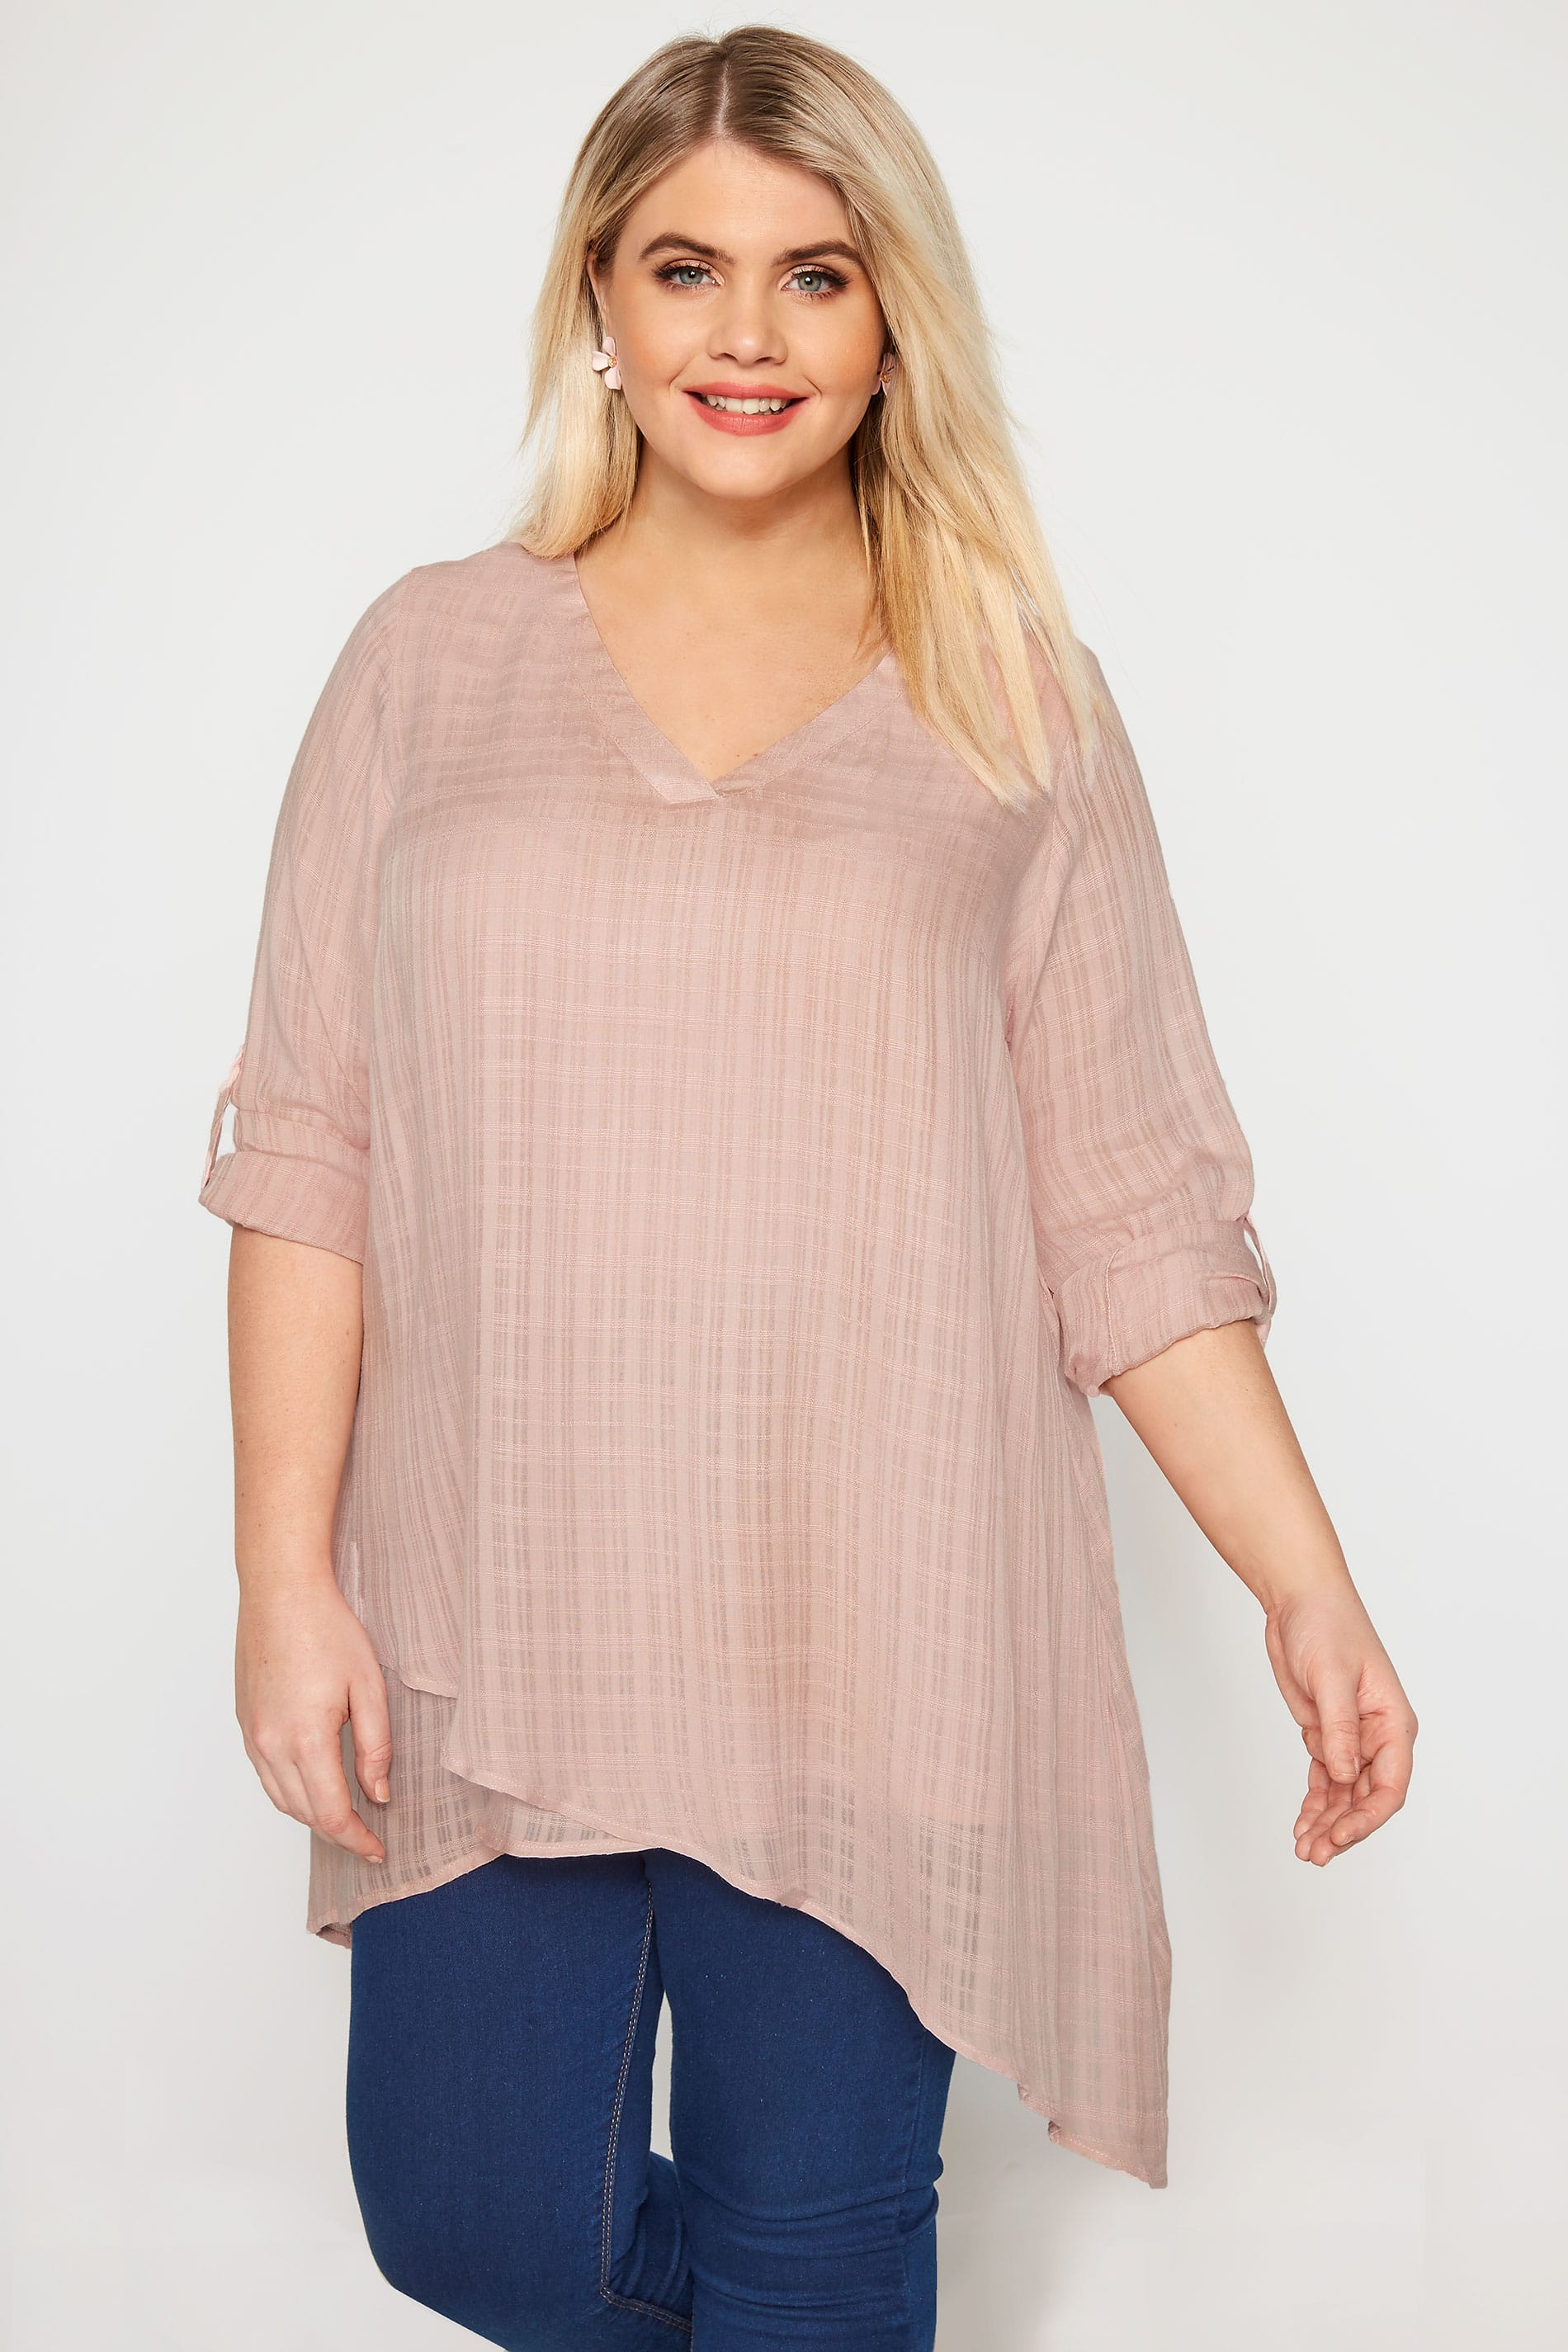 Dusky Pink Layered Blouse